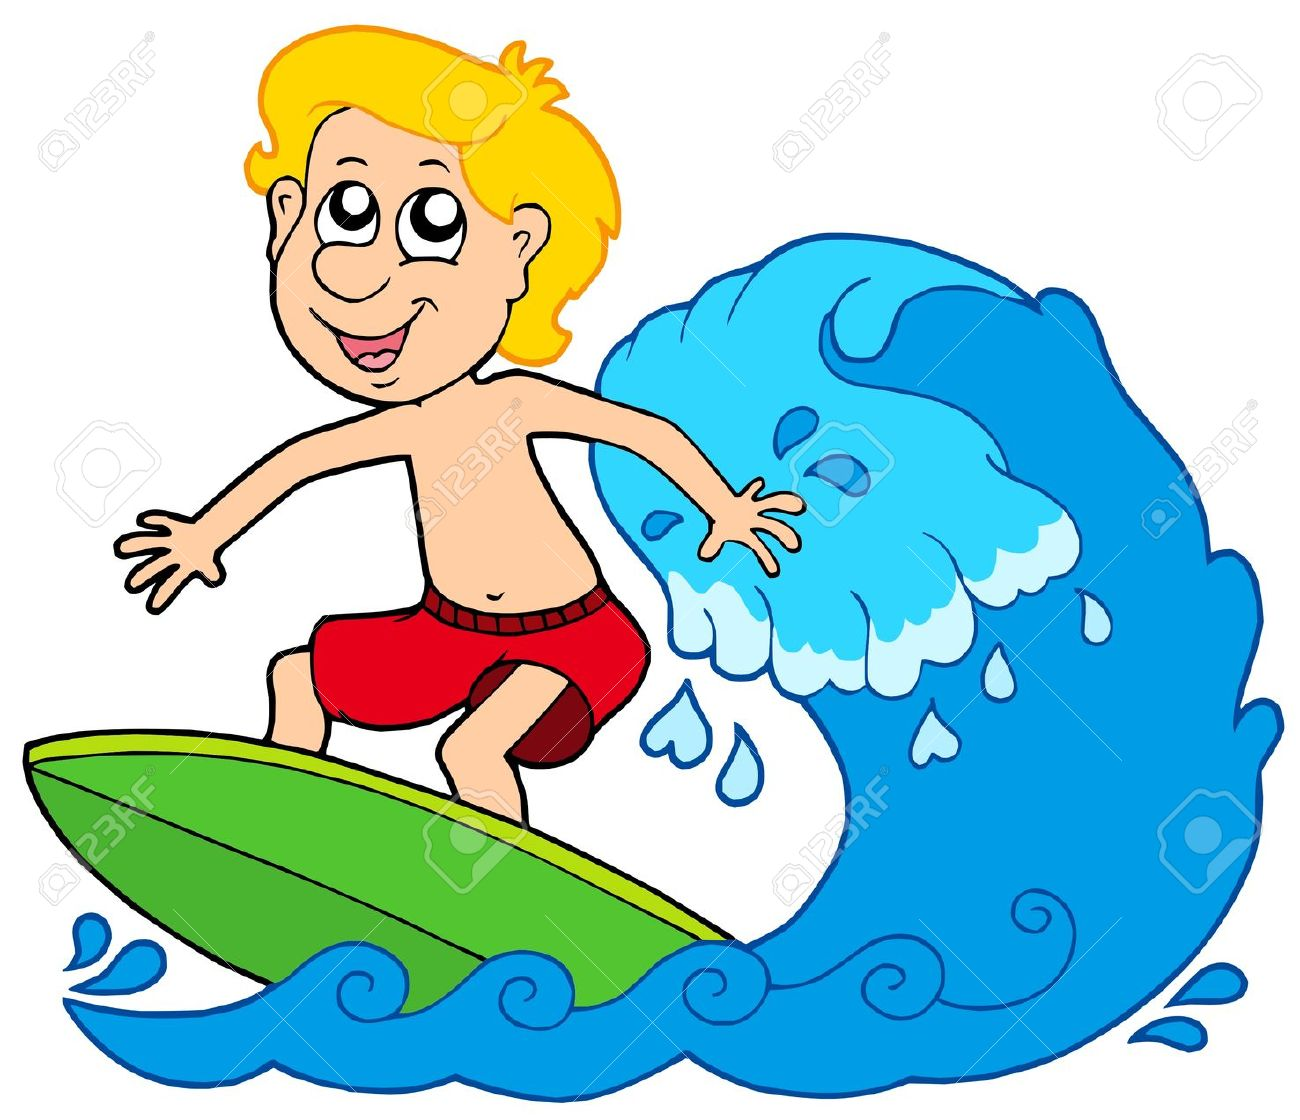 hight resolution of 1300x1120 surfer clipart surfer boy